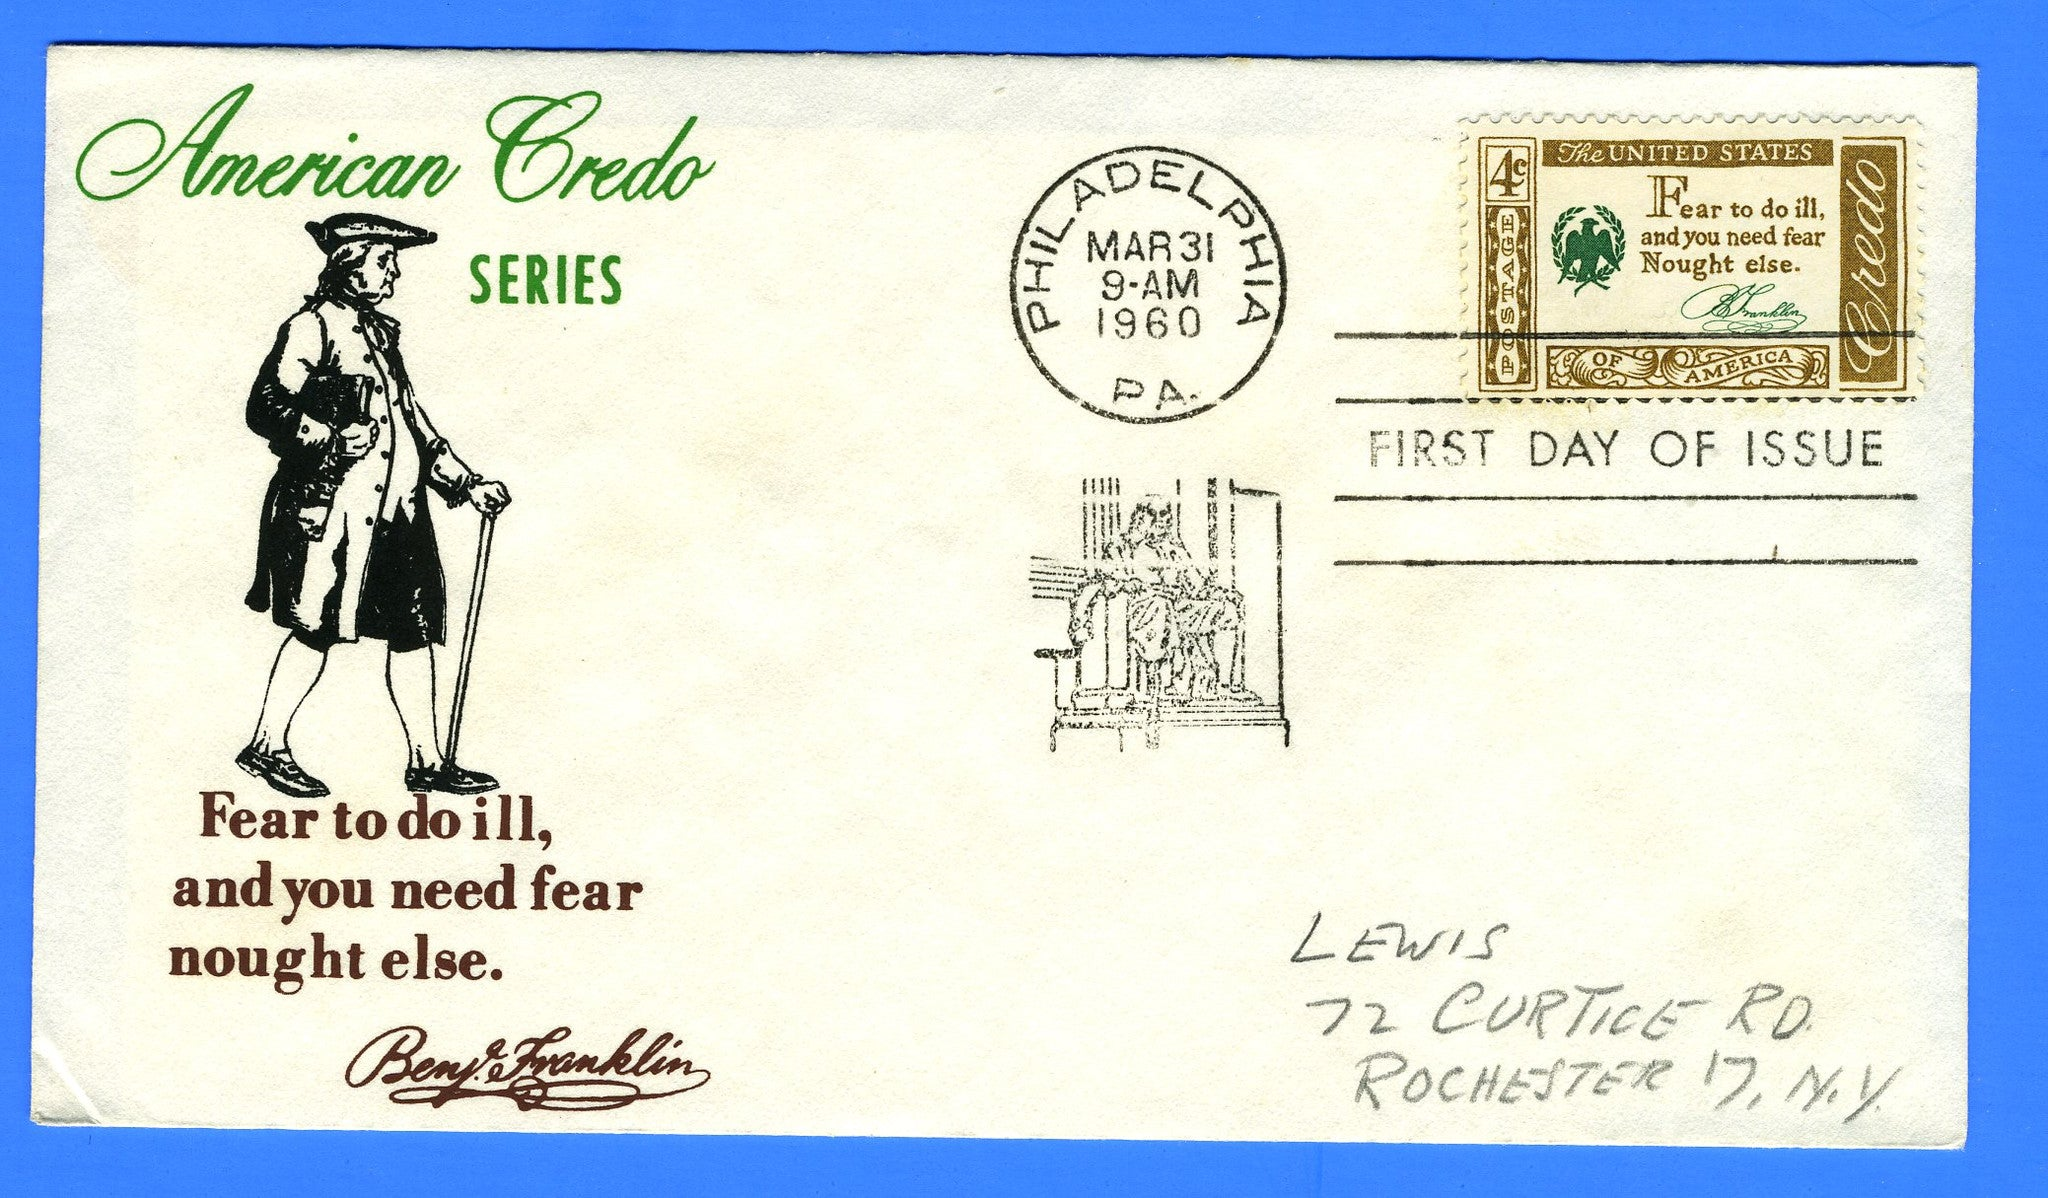 Scott 1140 Credo Benjamin Franklin Silk Screen First Day Cover by Eric Lewis - Very Rare - Only Six Known Copies